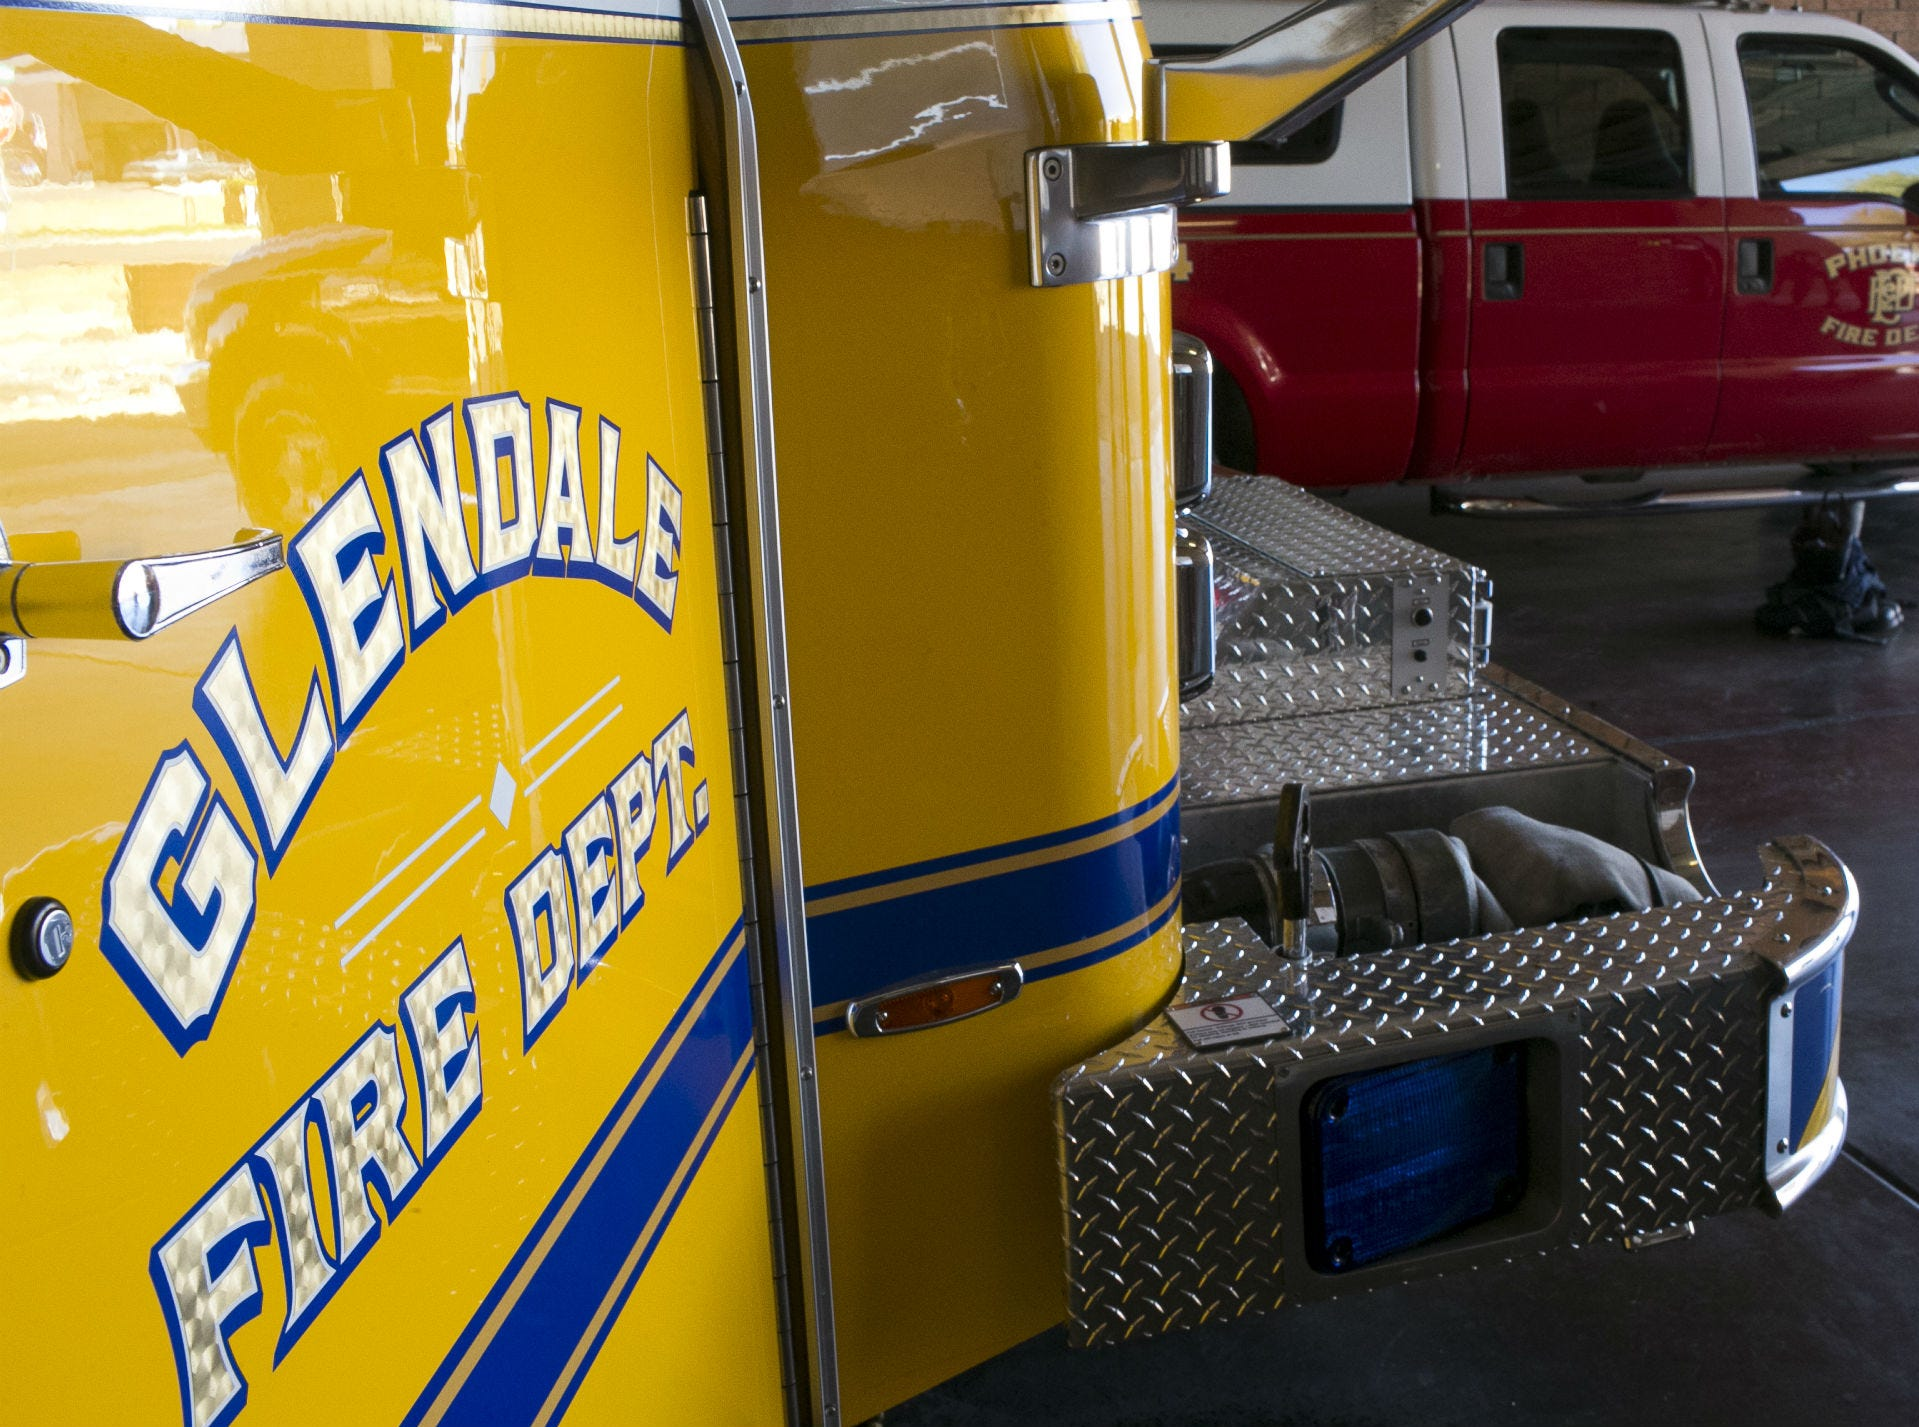 A Glendale fire truck is parked next to a Phoenix fire truck at Fire Station 154 on Feb. 7, 2019, in Glendale.